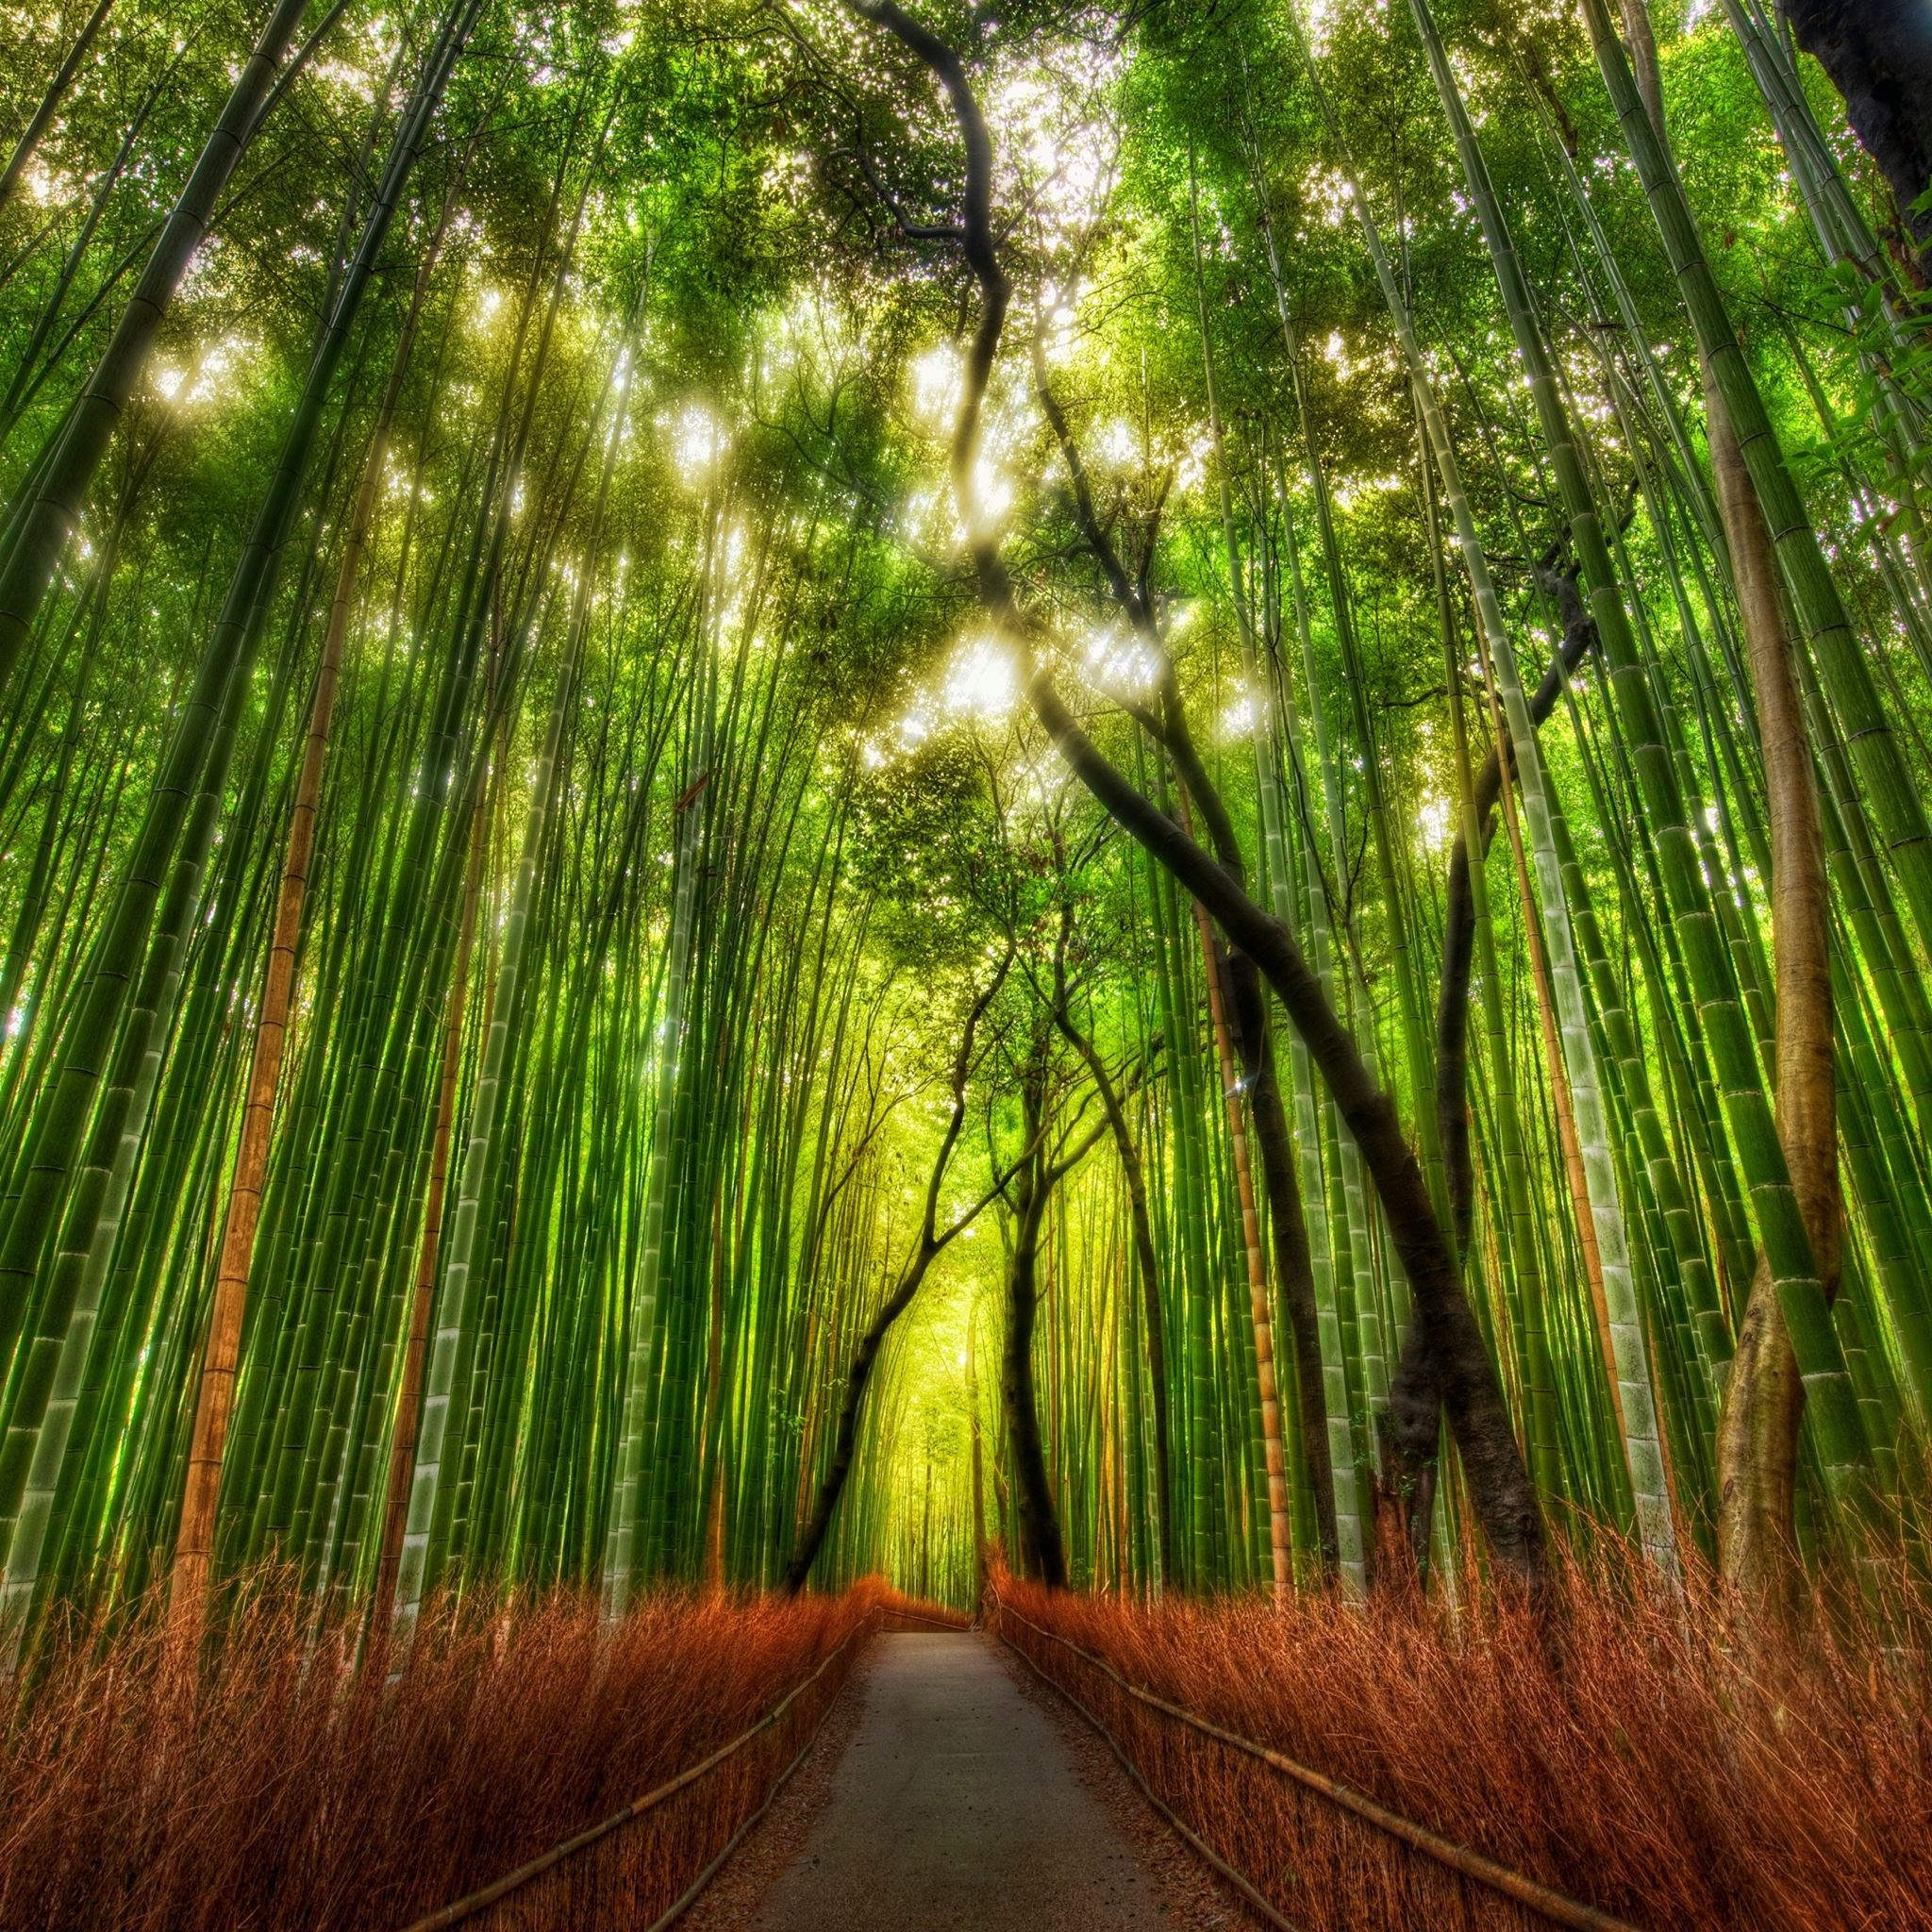 Bamboo Grove iPad Air wallpaper